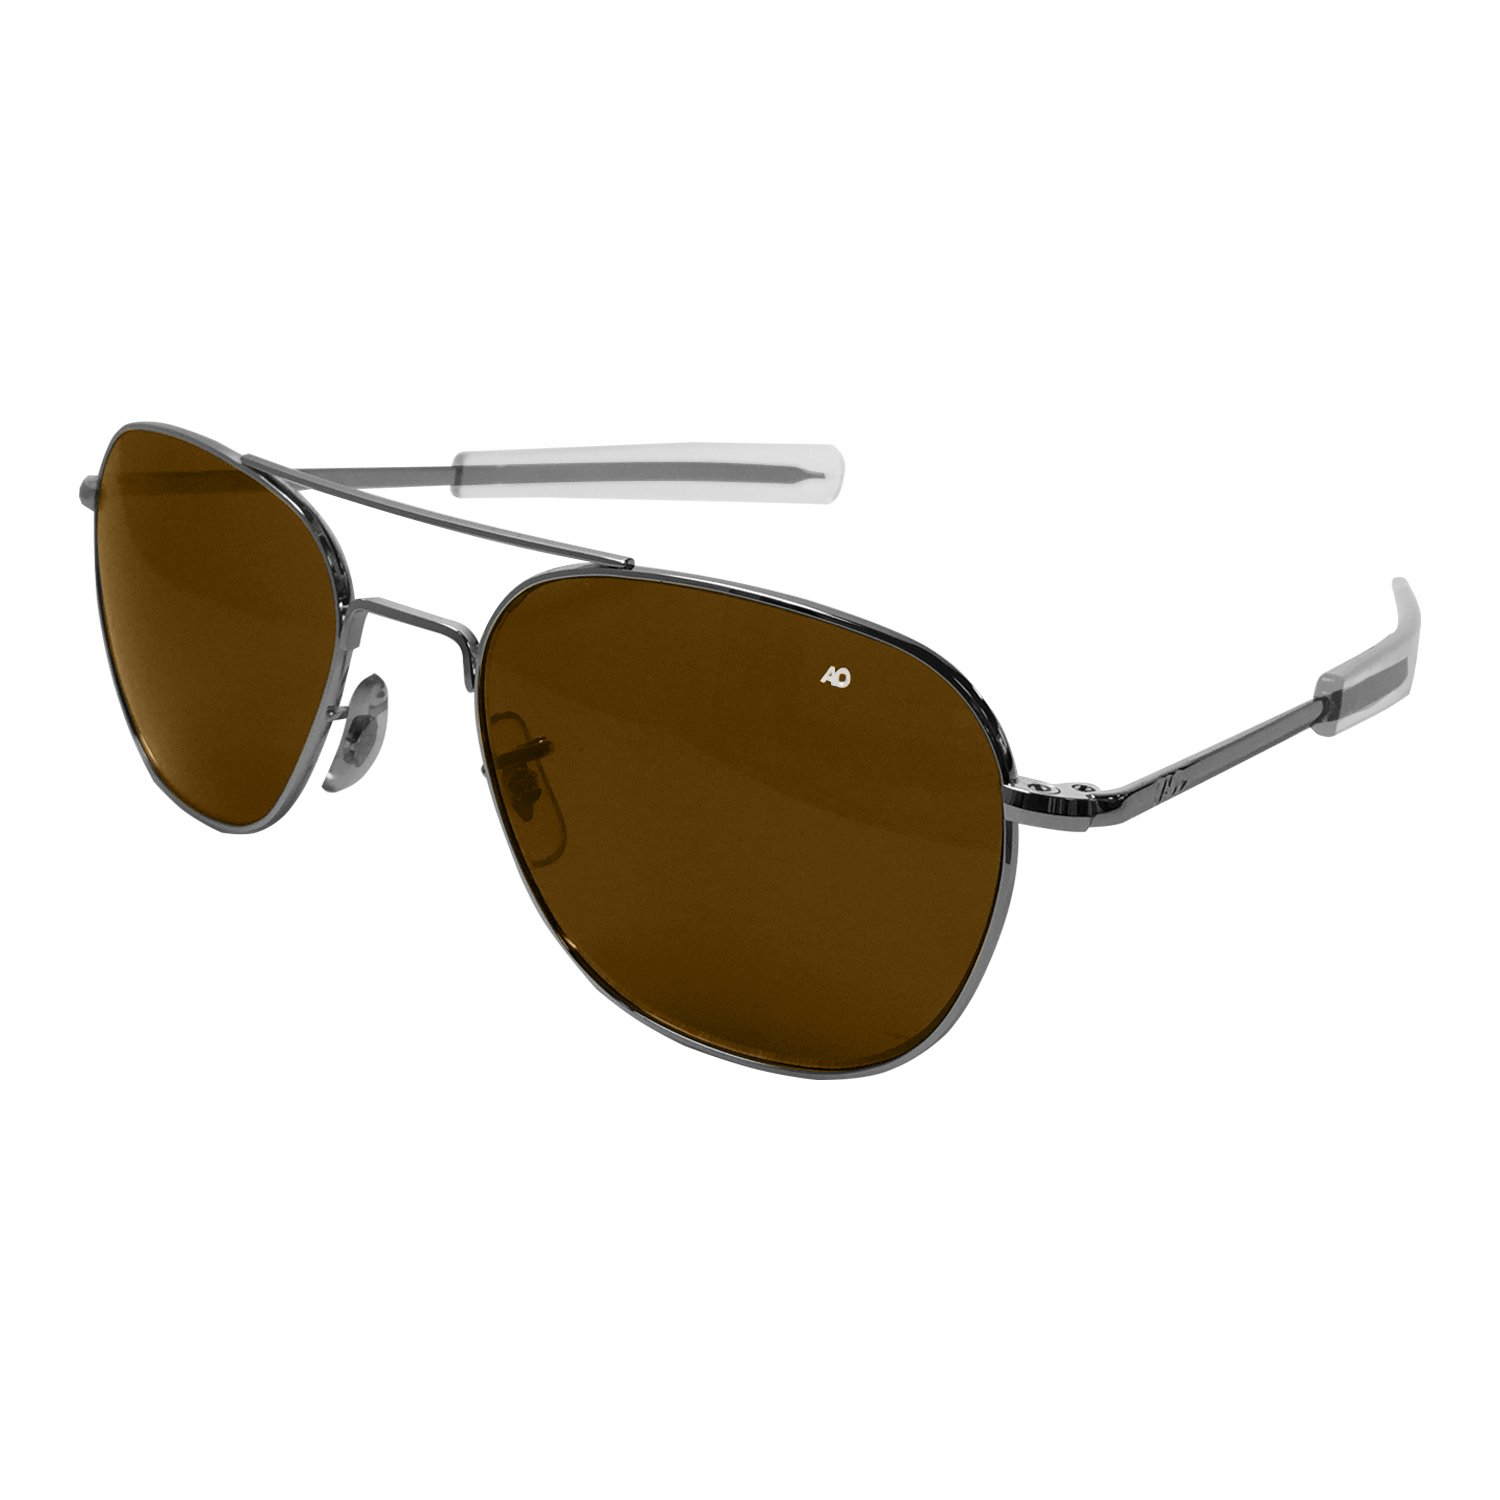 AO Eyewear American Optical - Original Pilot Aviator Sunglasses with Bayonet Temple and Silver Frame, High Contrast Amber Polycarbon​ate Lens by AO Eyewear (Image #1)